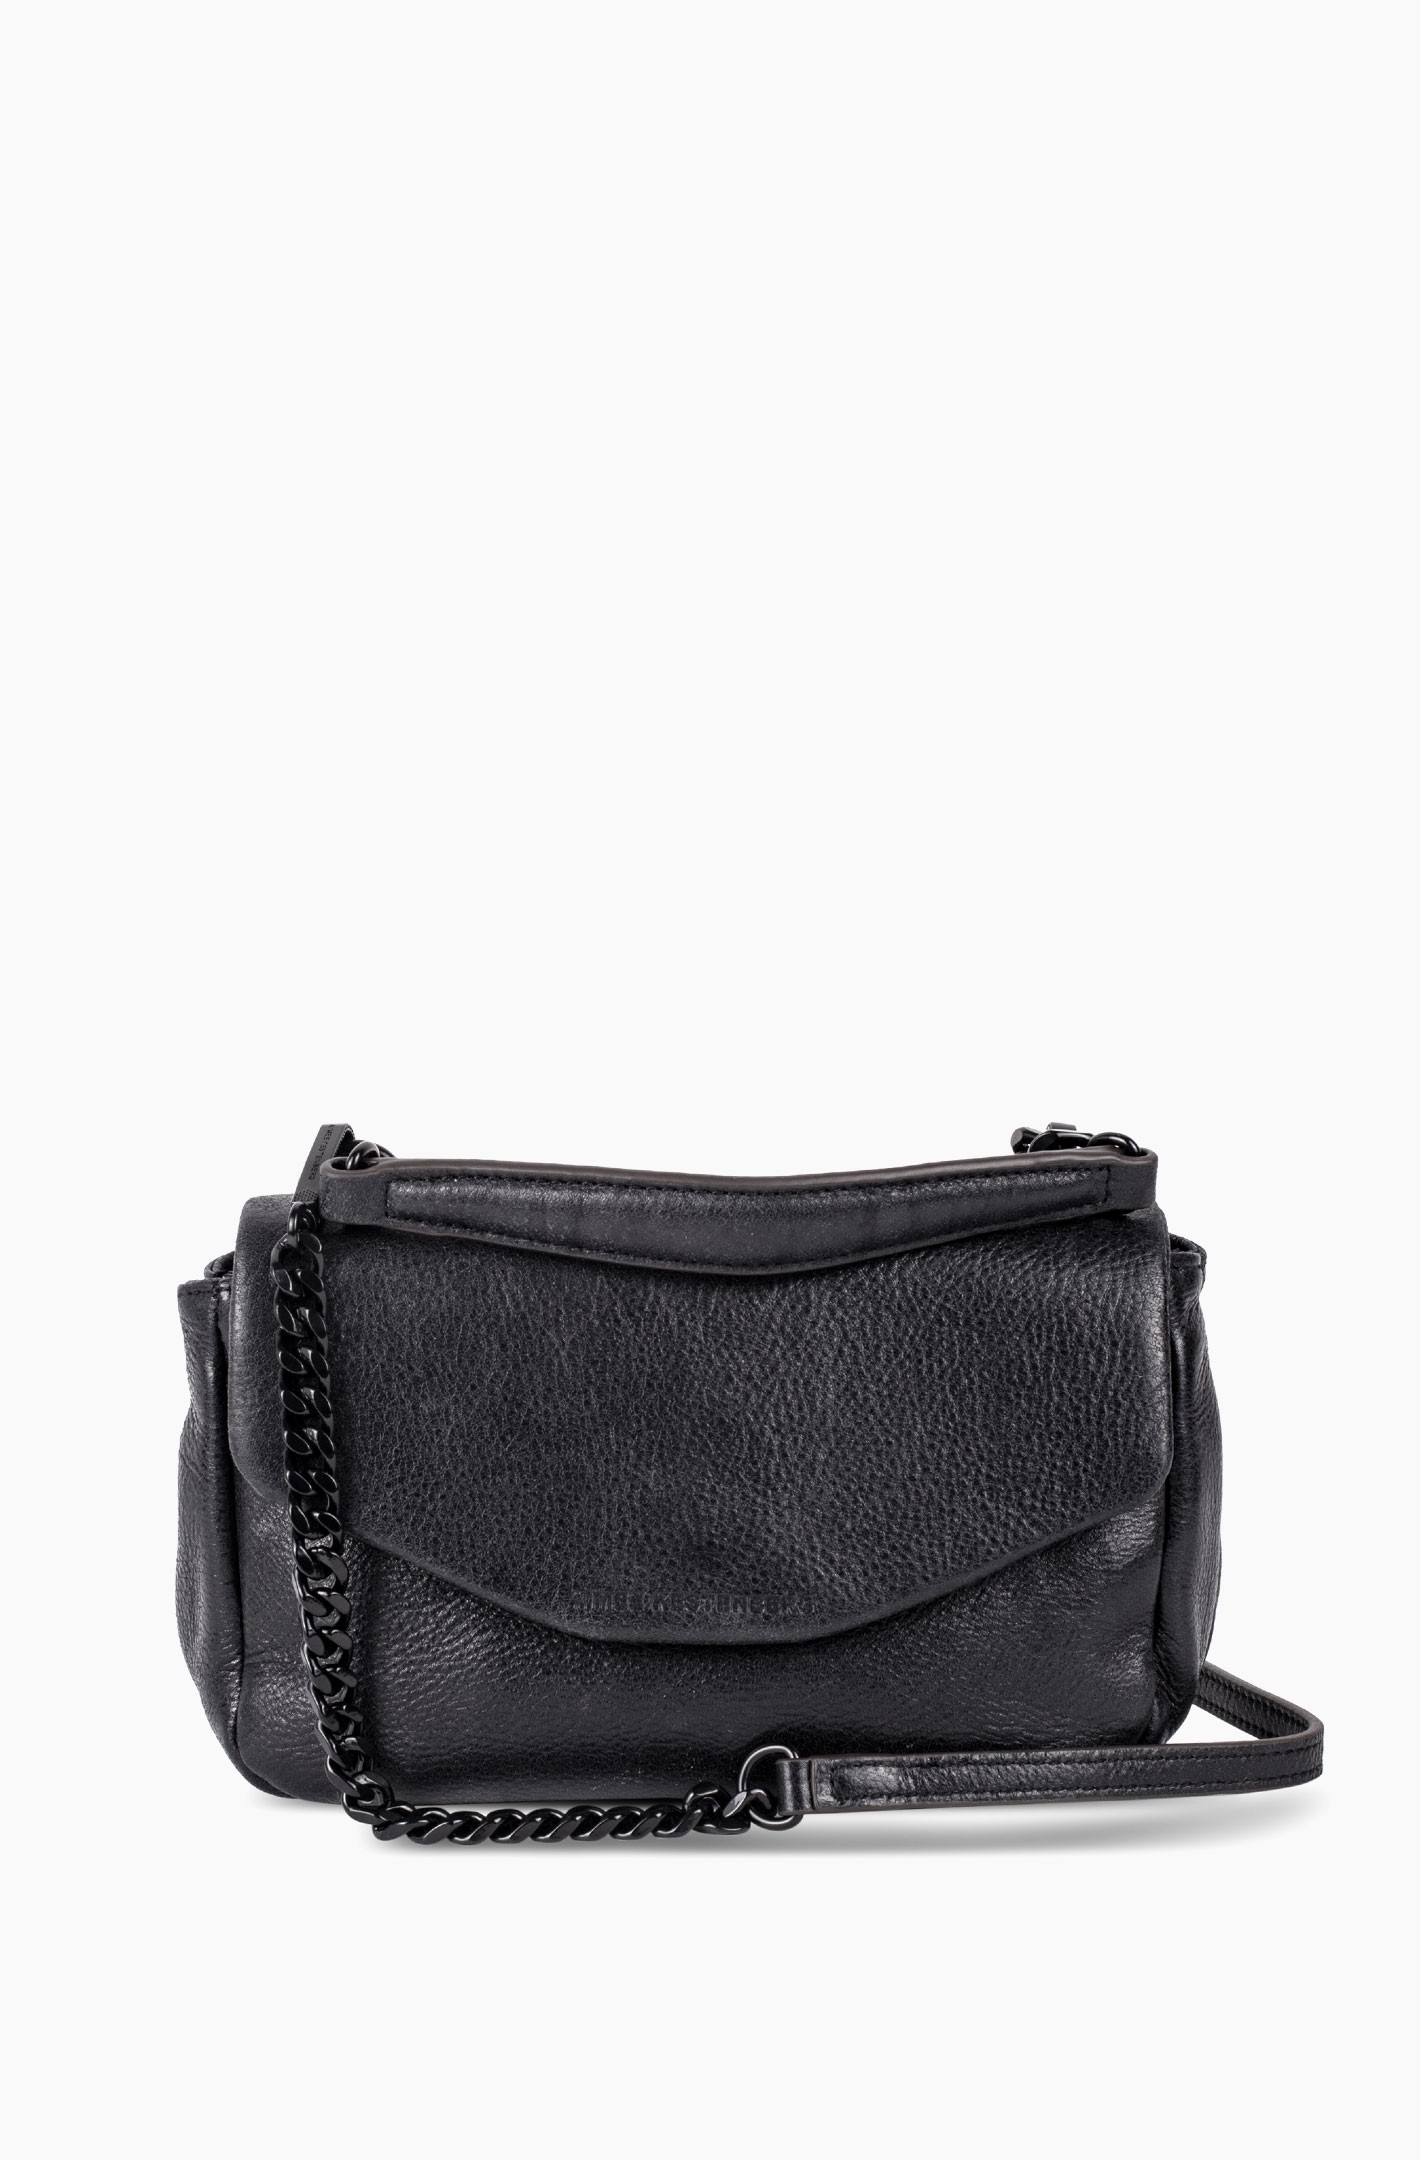 W33rd Mini Crossbody